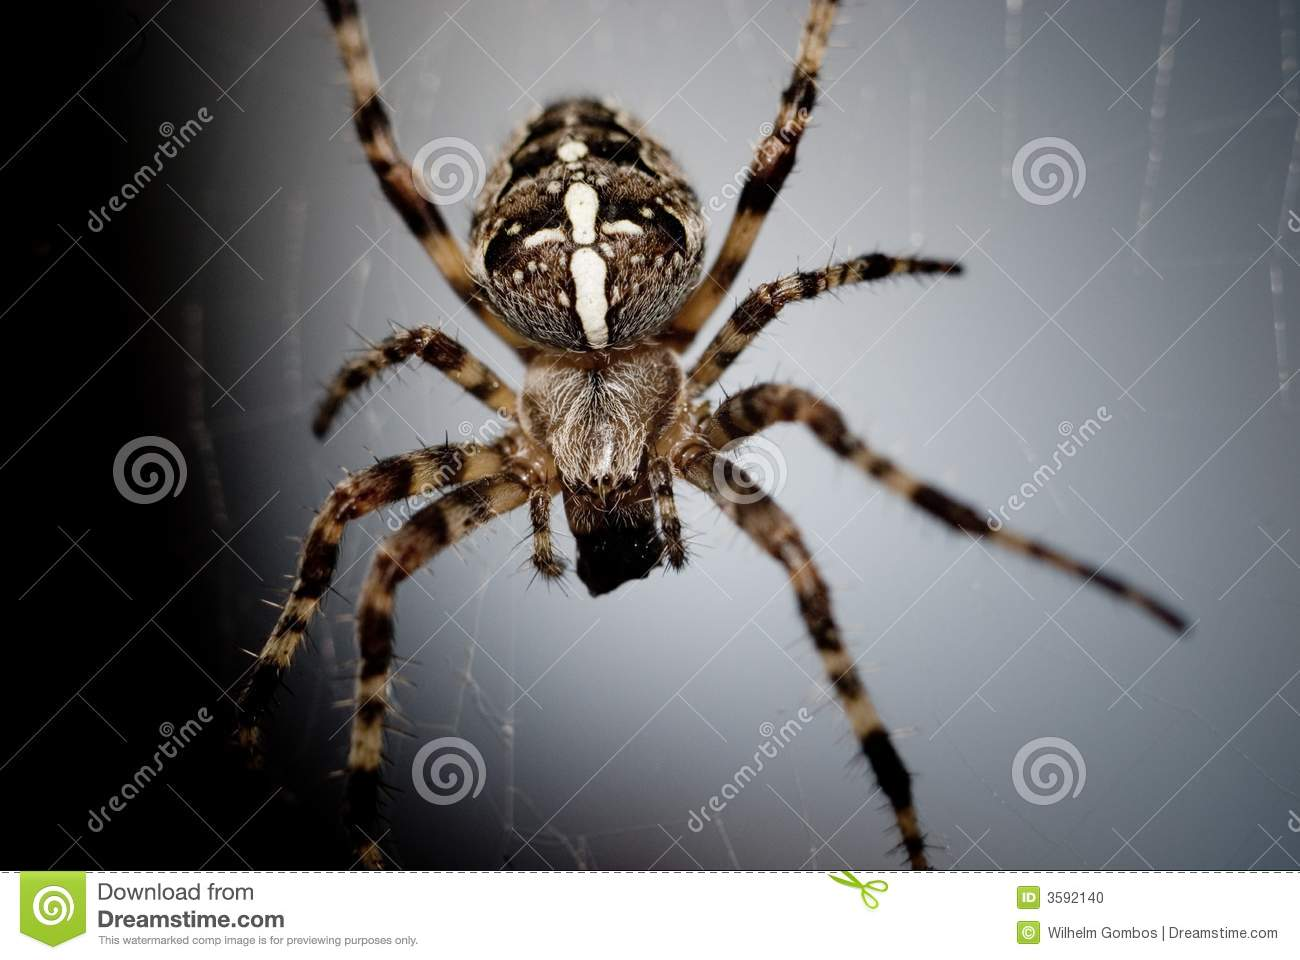 Black and yellow striped spider